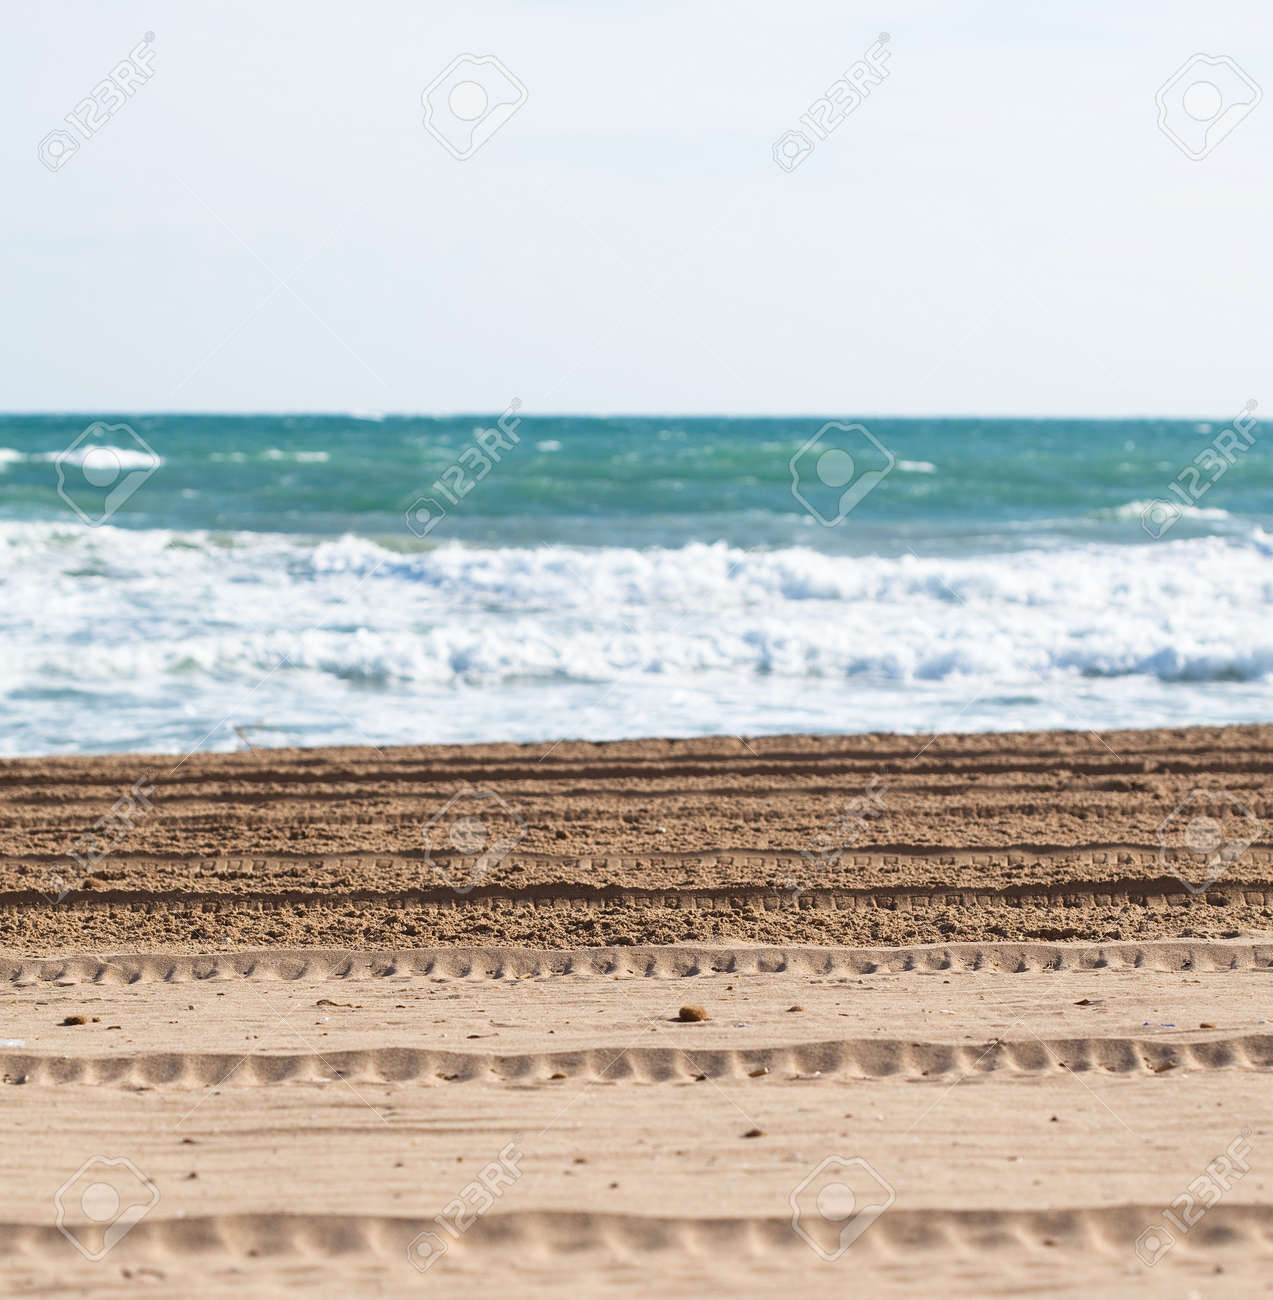 mark of truck on the sand closeup Stock Photo - 8770973